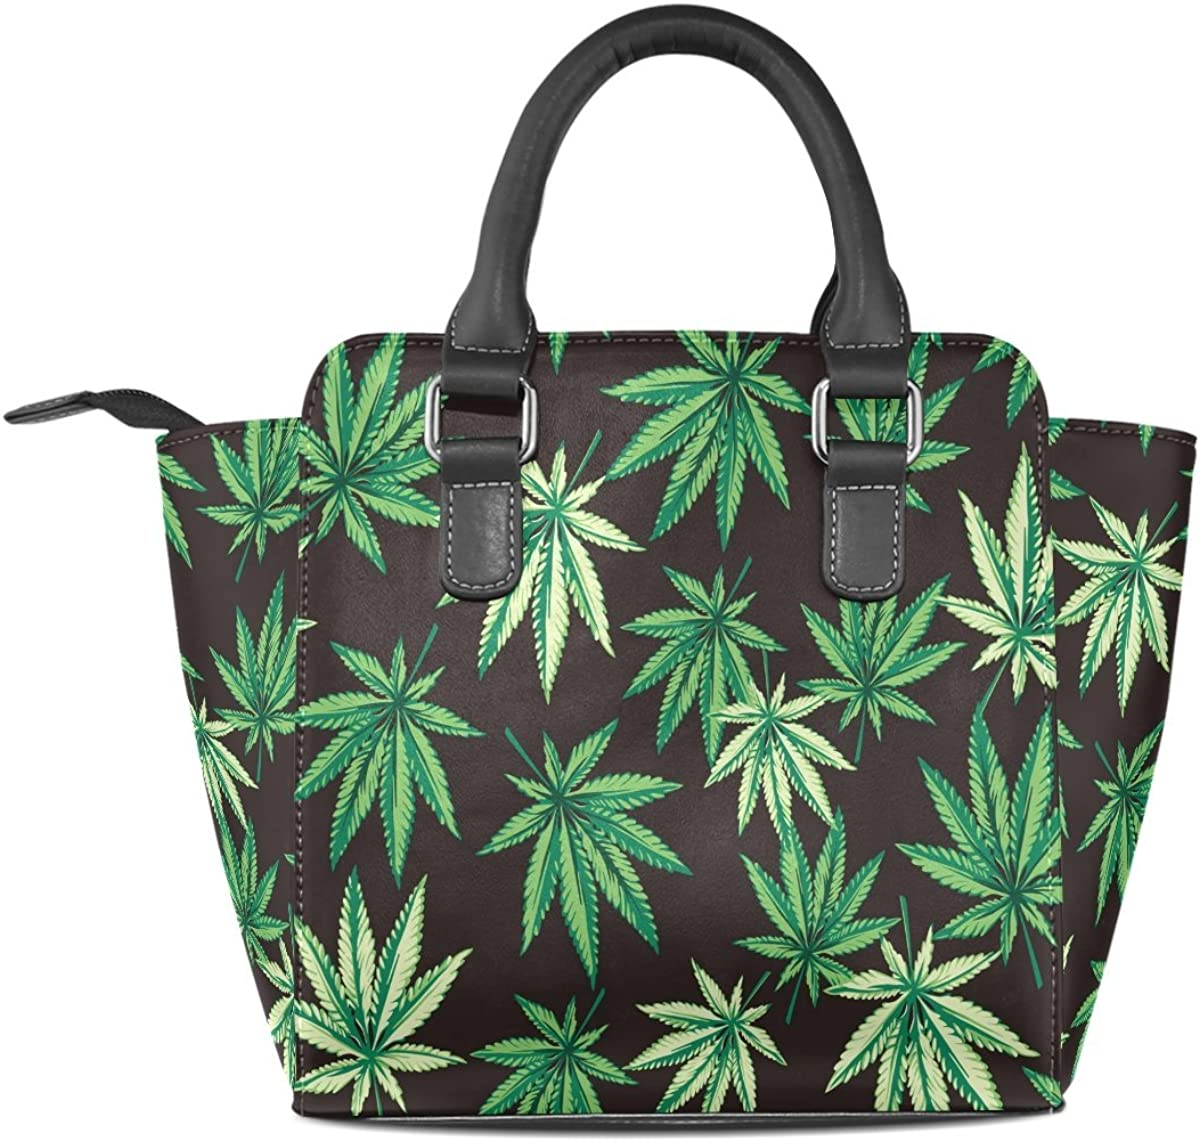 Use4 Marijuana Leaves Green Rivet PU Leather Tote Bag Shoulder Bag Purse